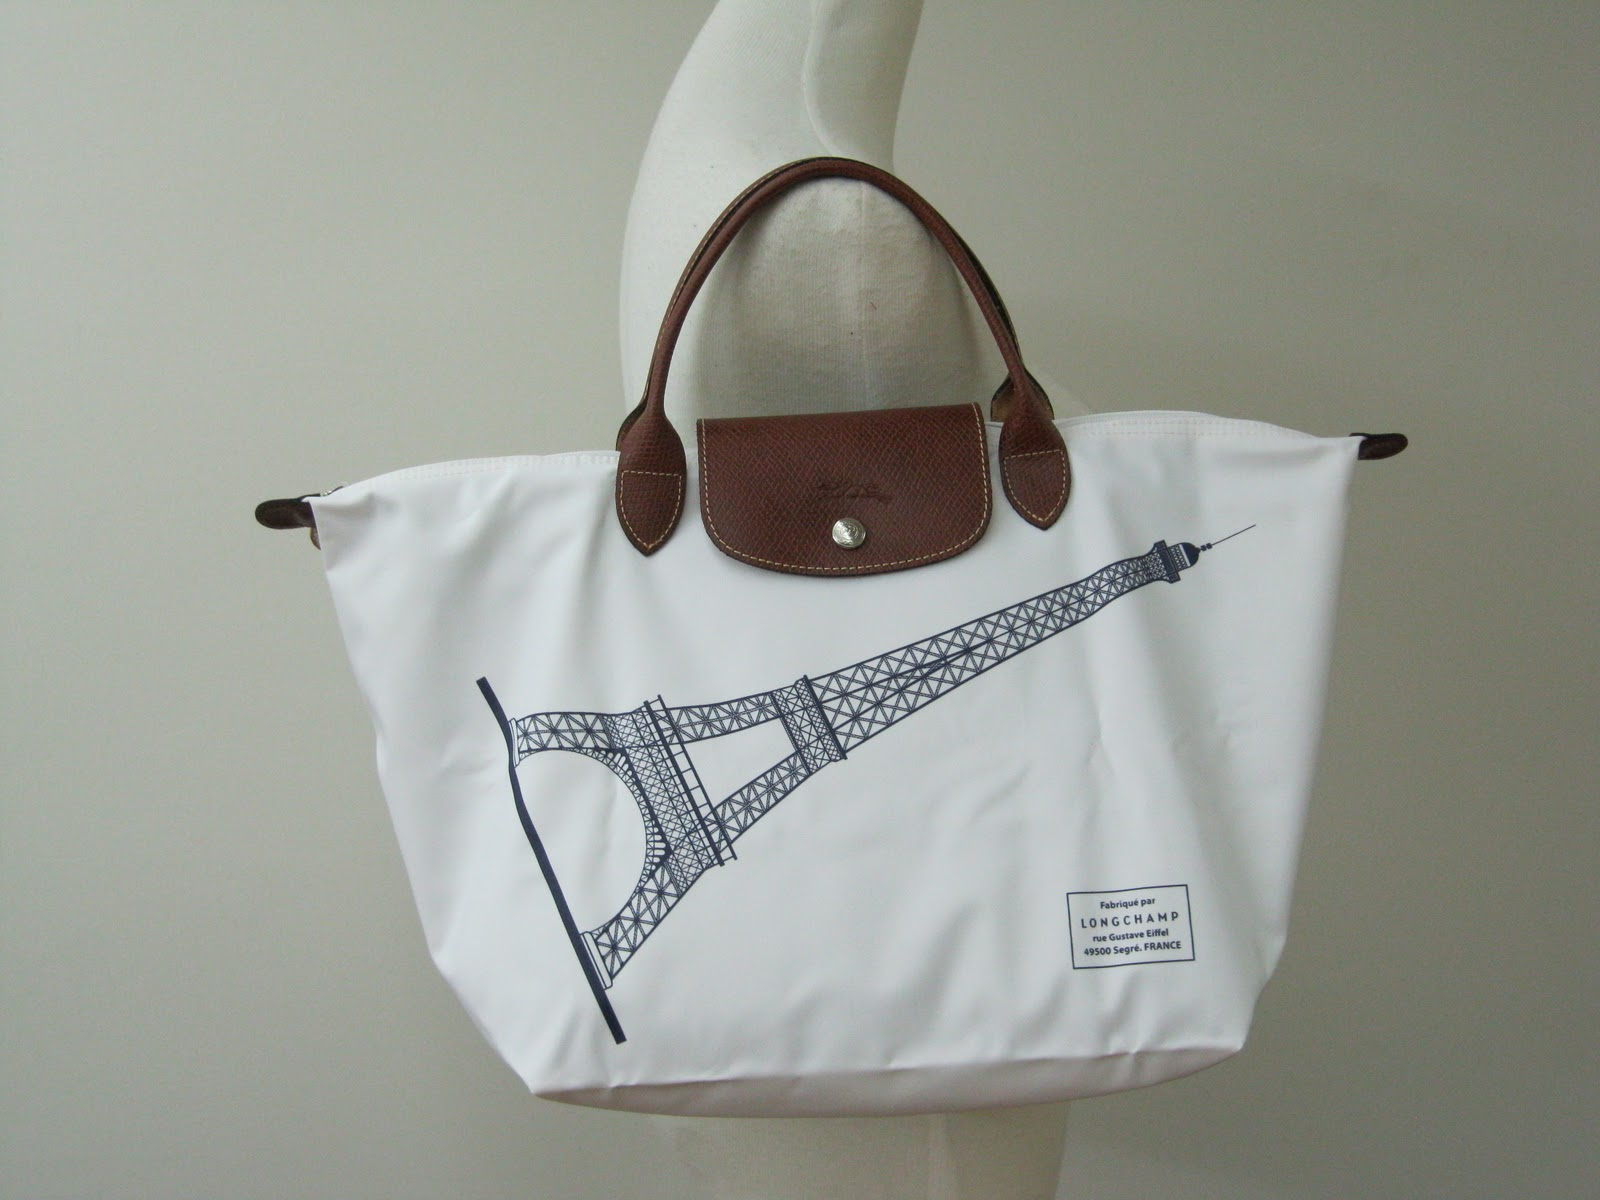 New Arrival Genuine Long Champ Bags